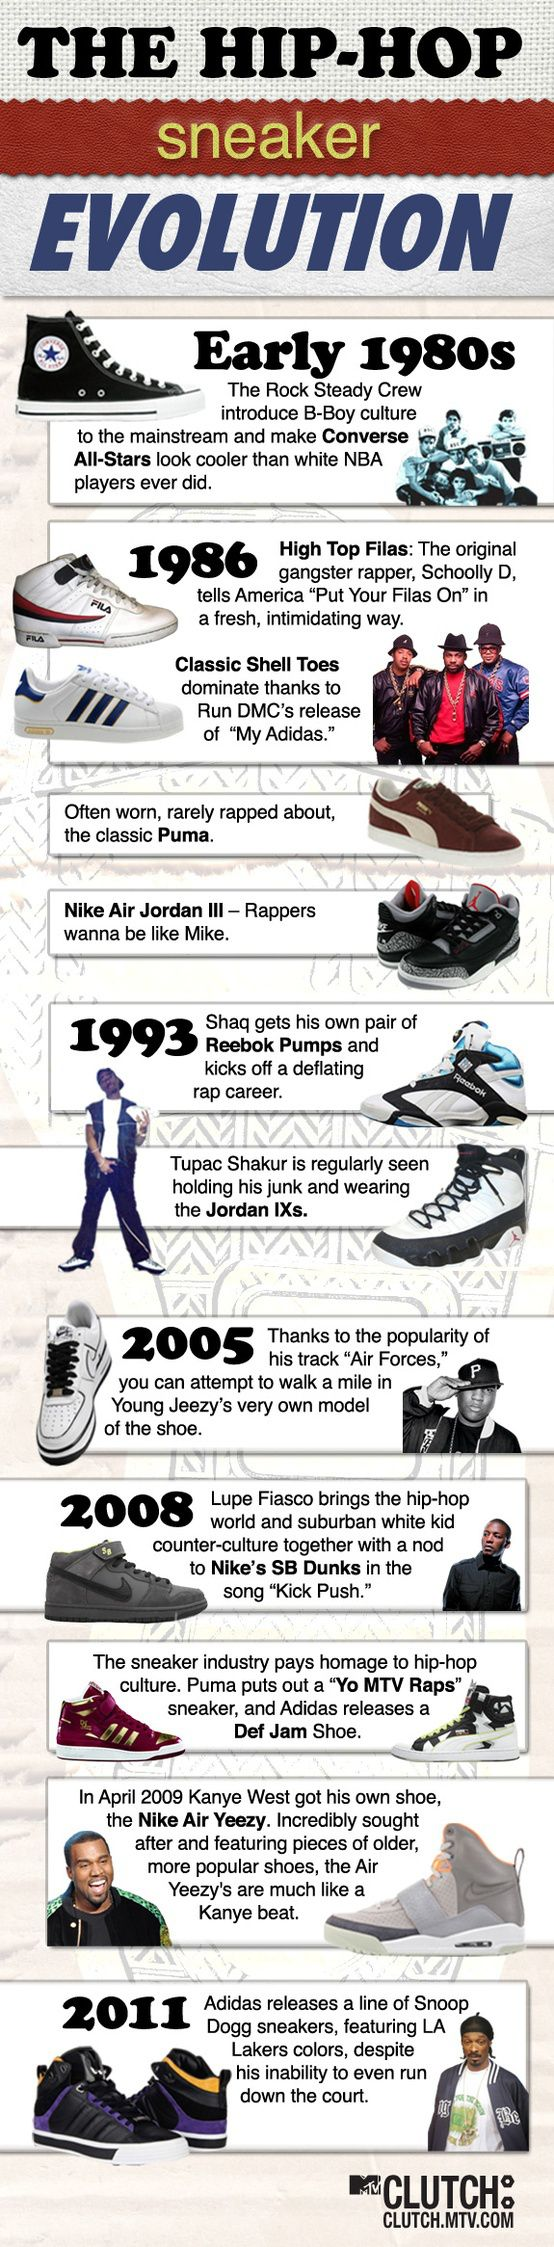 evolution de la sneakers avec le culture hip-hop